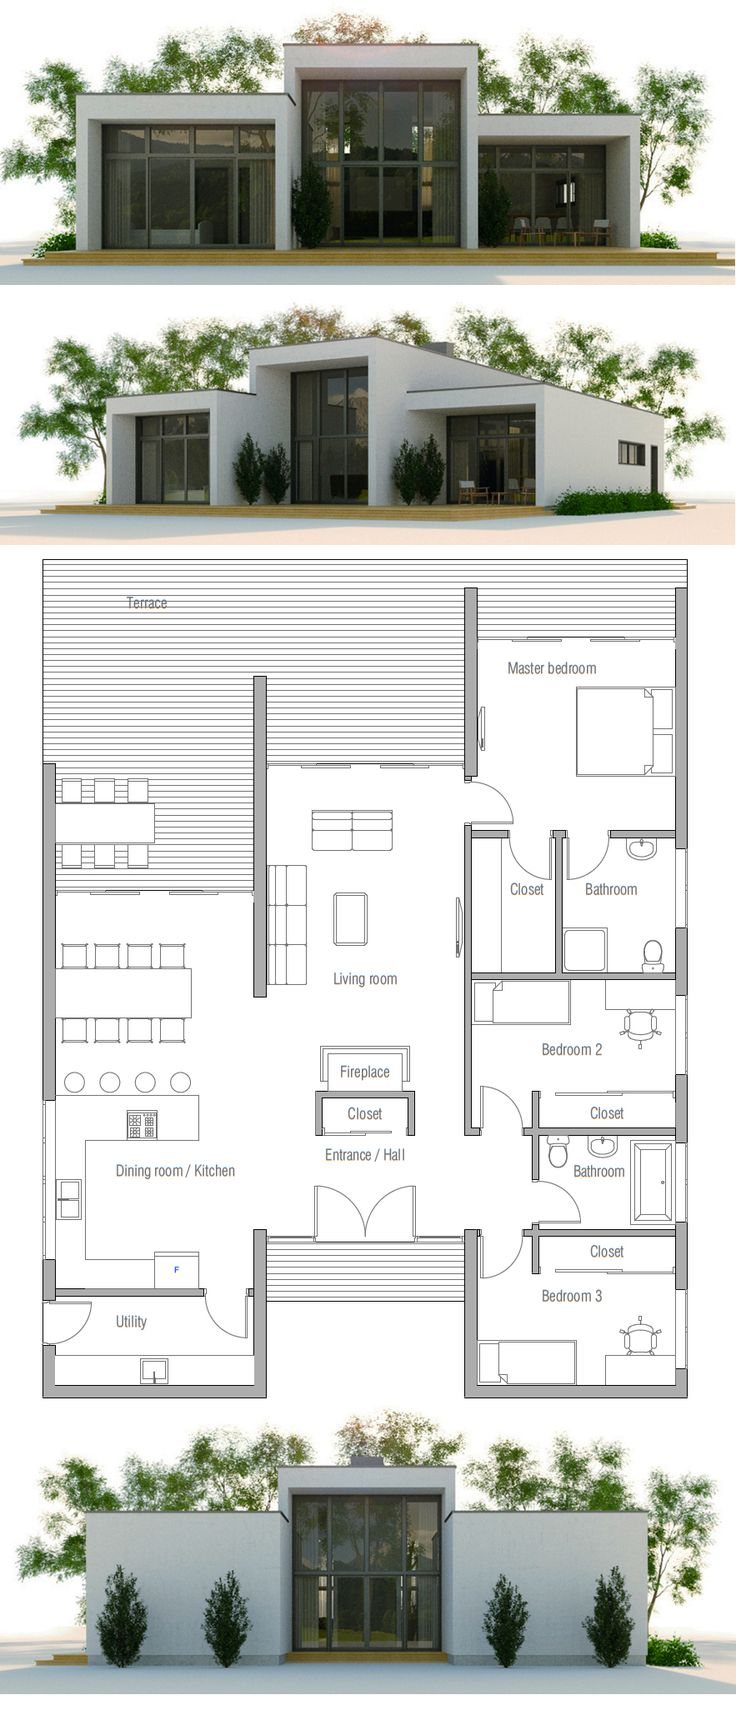 Best 25+ Minimalist house ideas on Pinterest | Modern ...